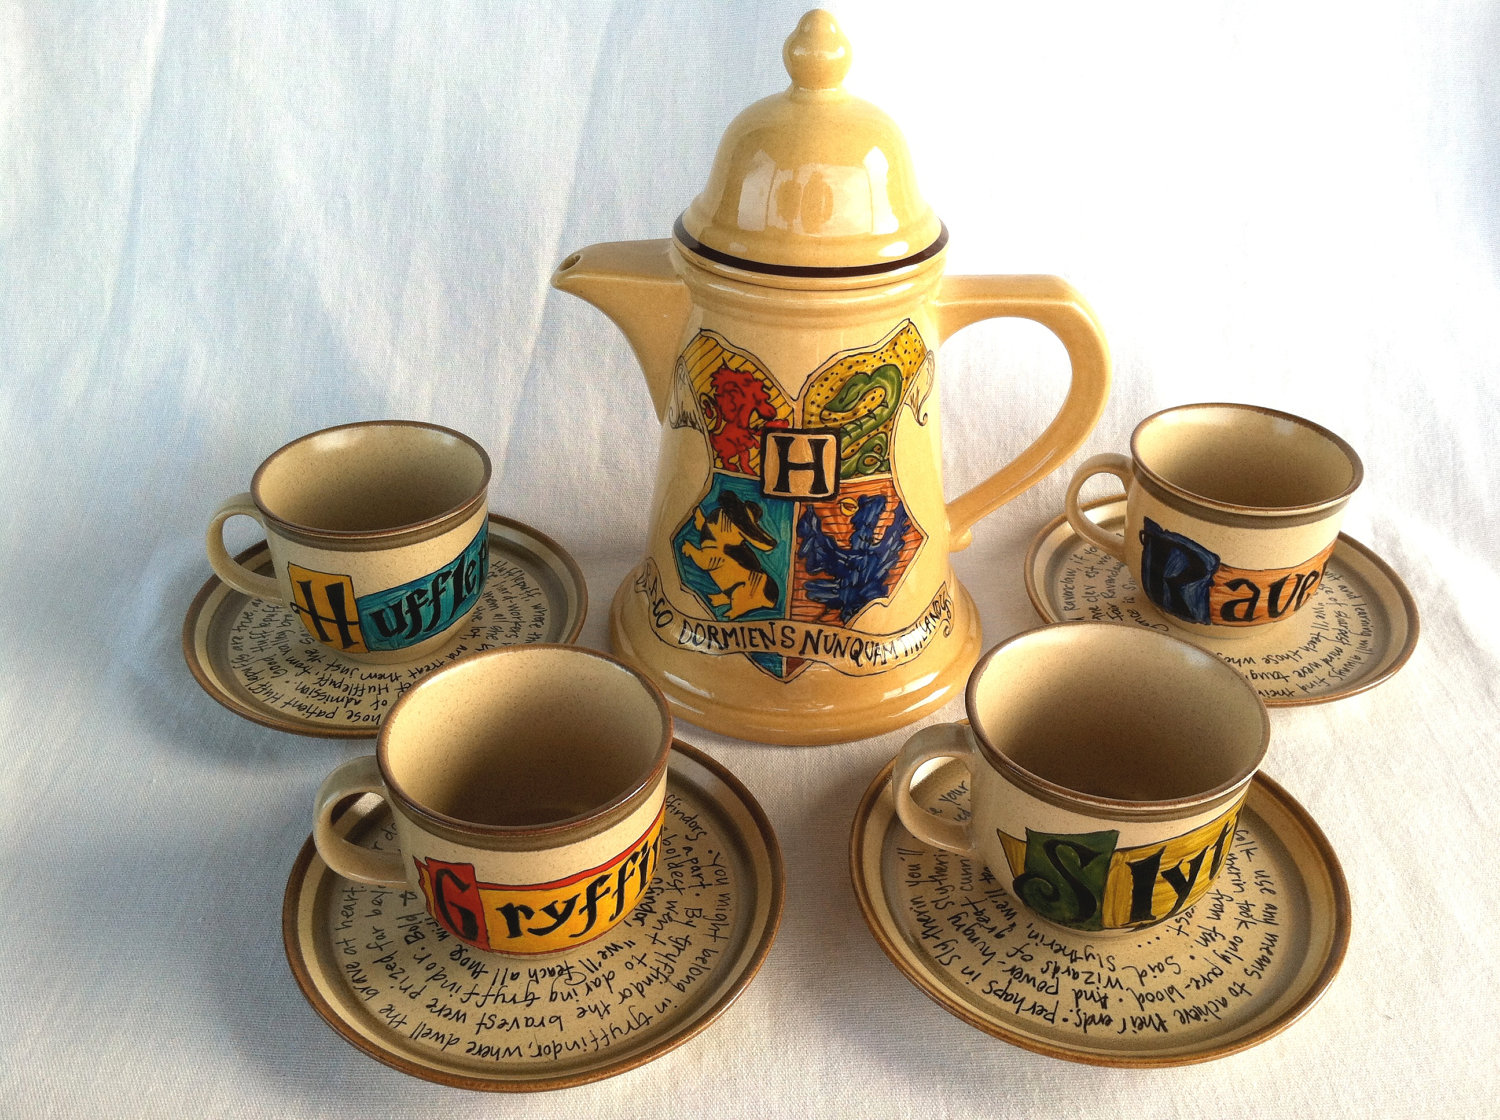 Harry Potter Tea Set